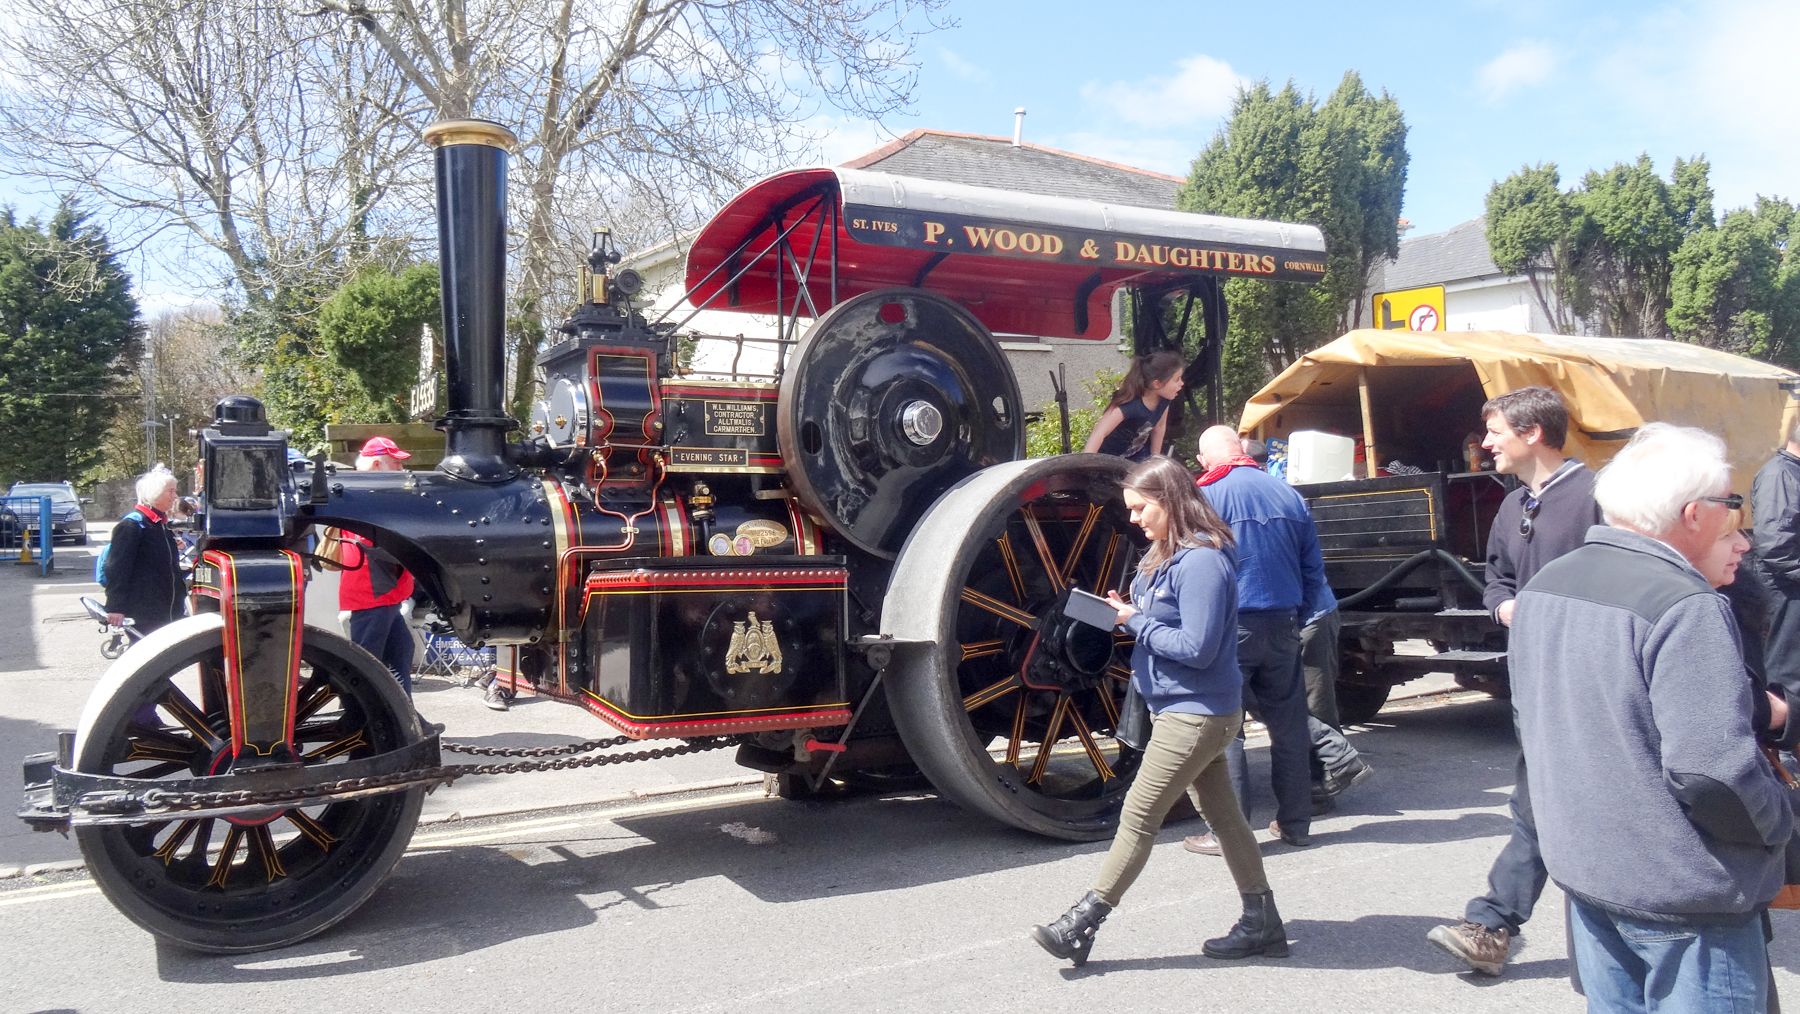 Steam engine at Trevithick Day